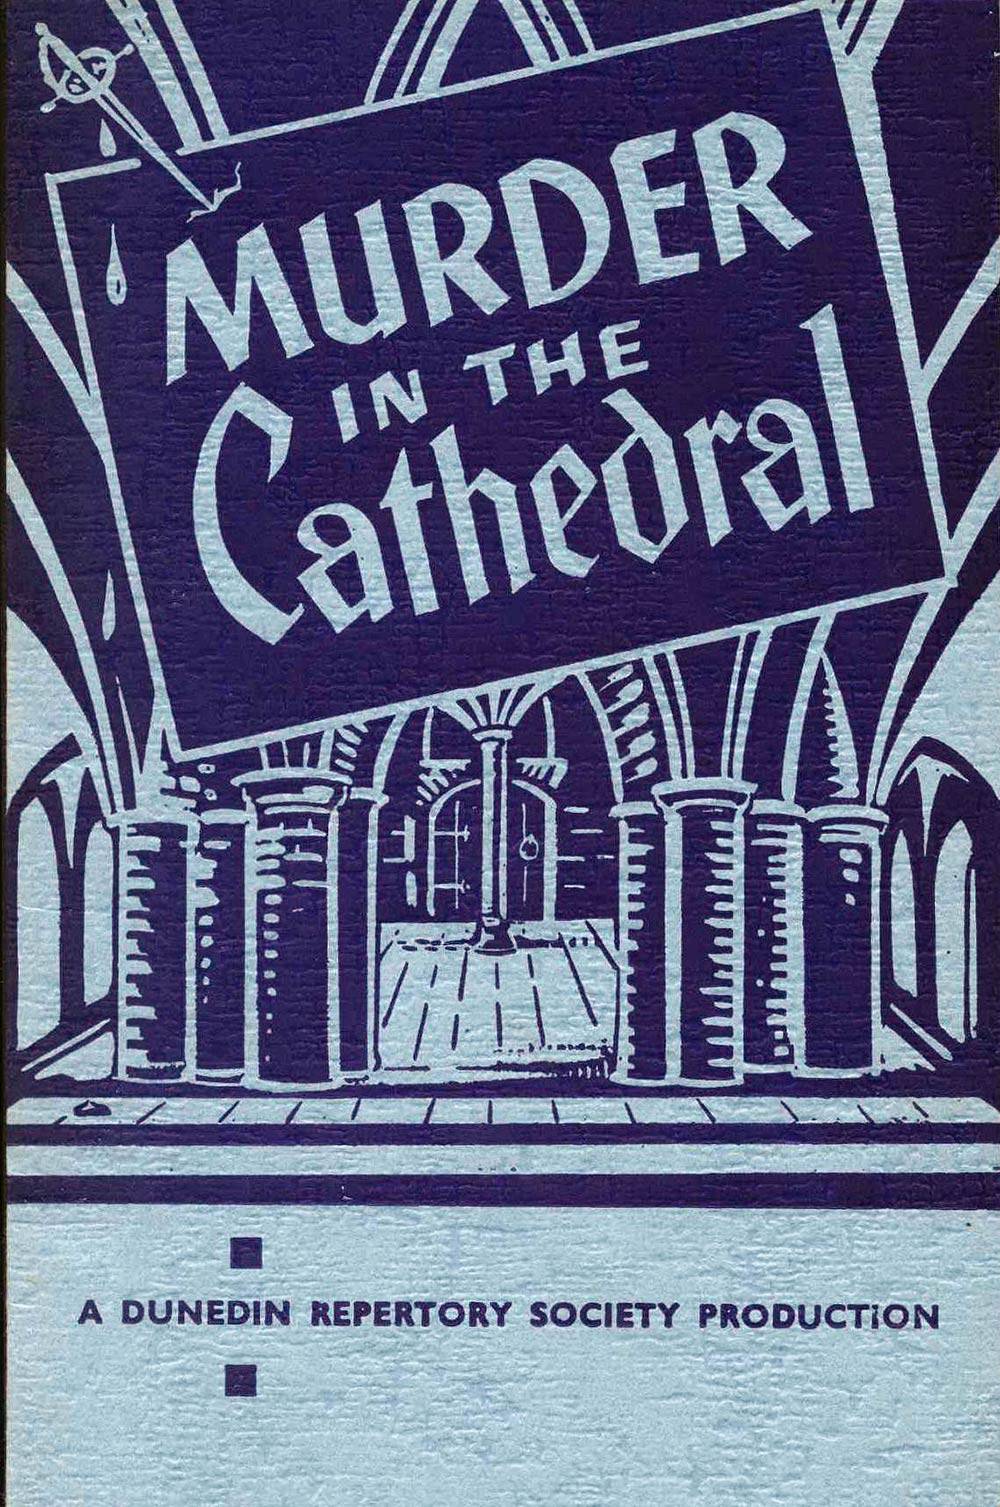 <em>Murder in the cathedral</em>. T.S. Eliot. (Dunedin Repertory Society). 1961.